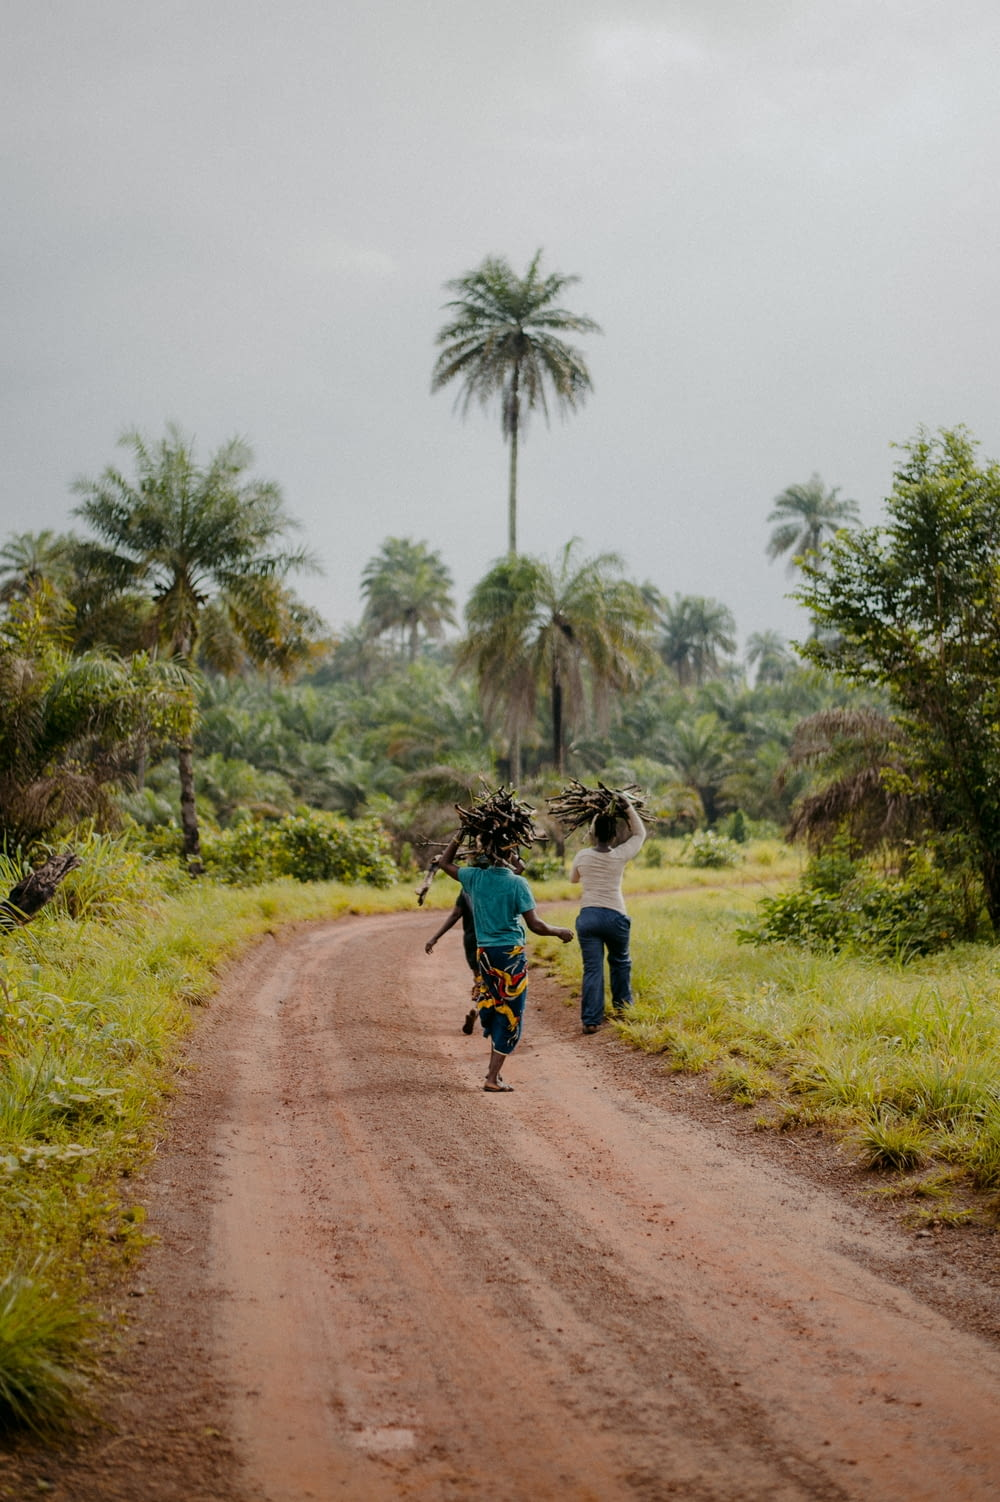 man in blue shirt and black pants walking on dirt road during daytime